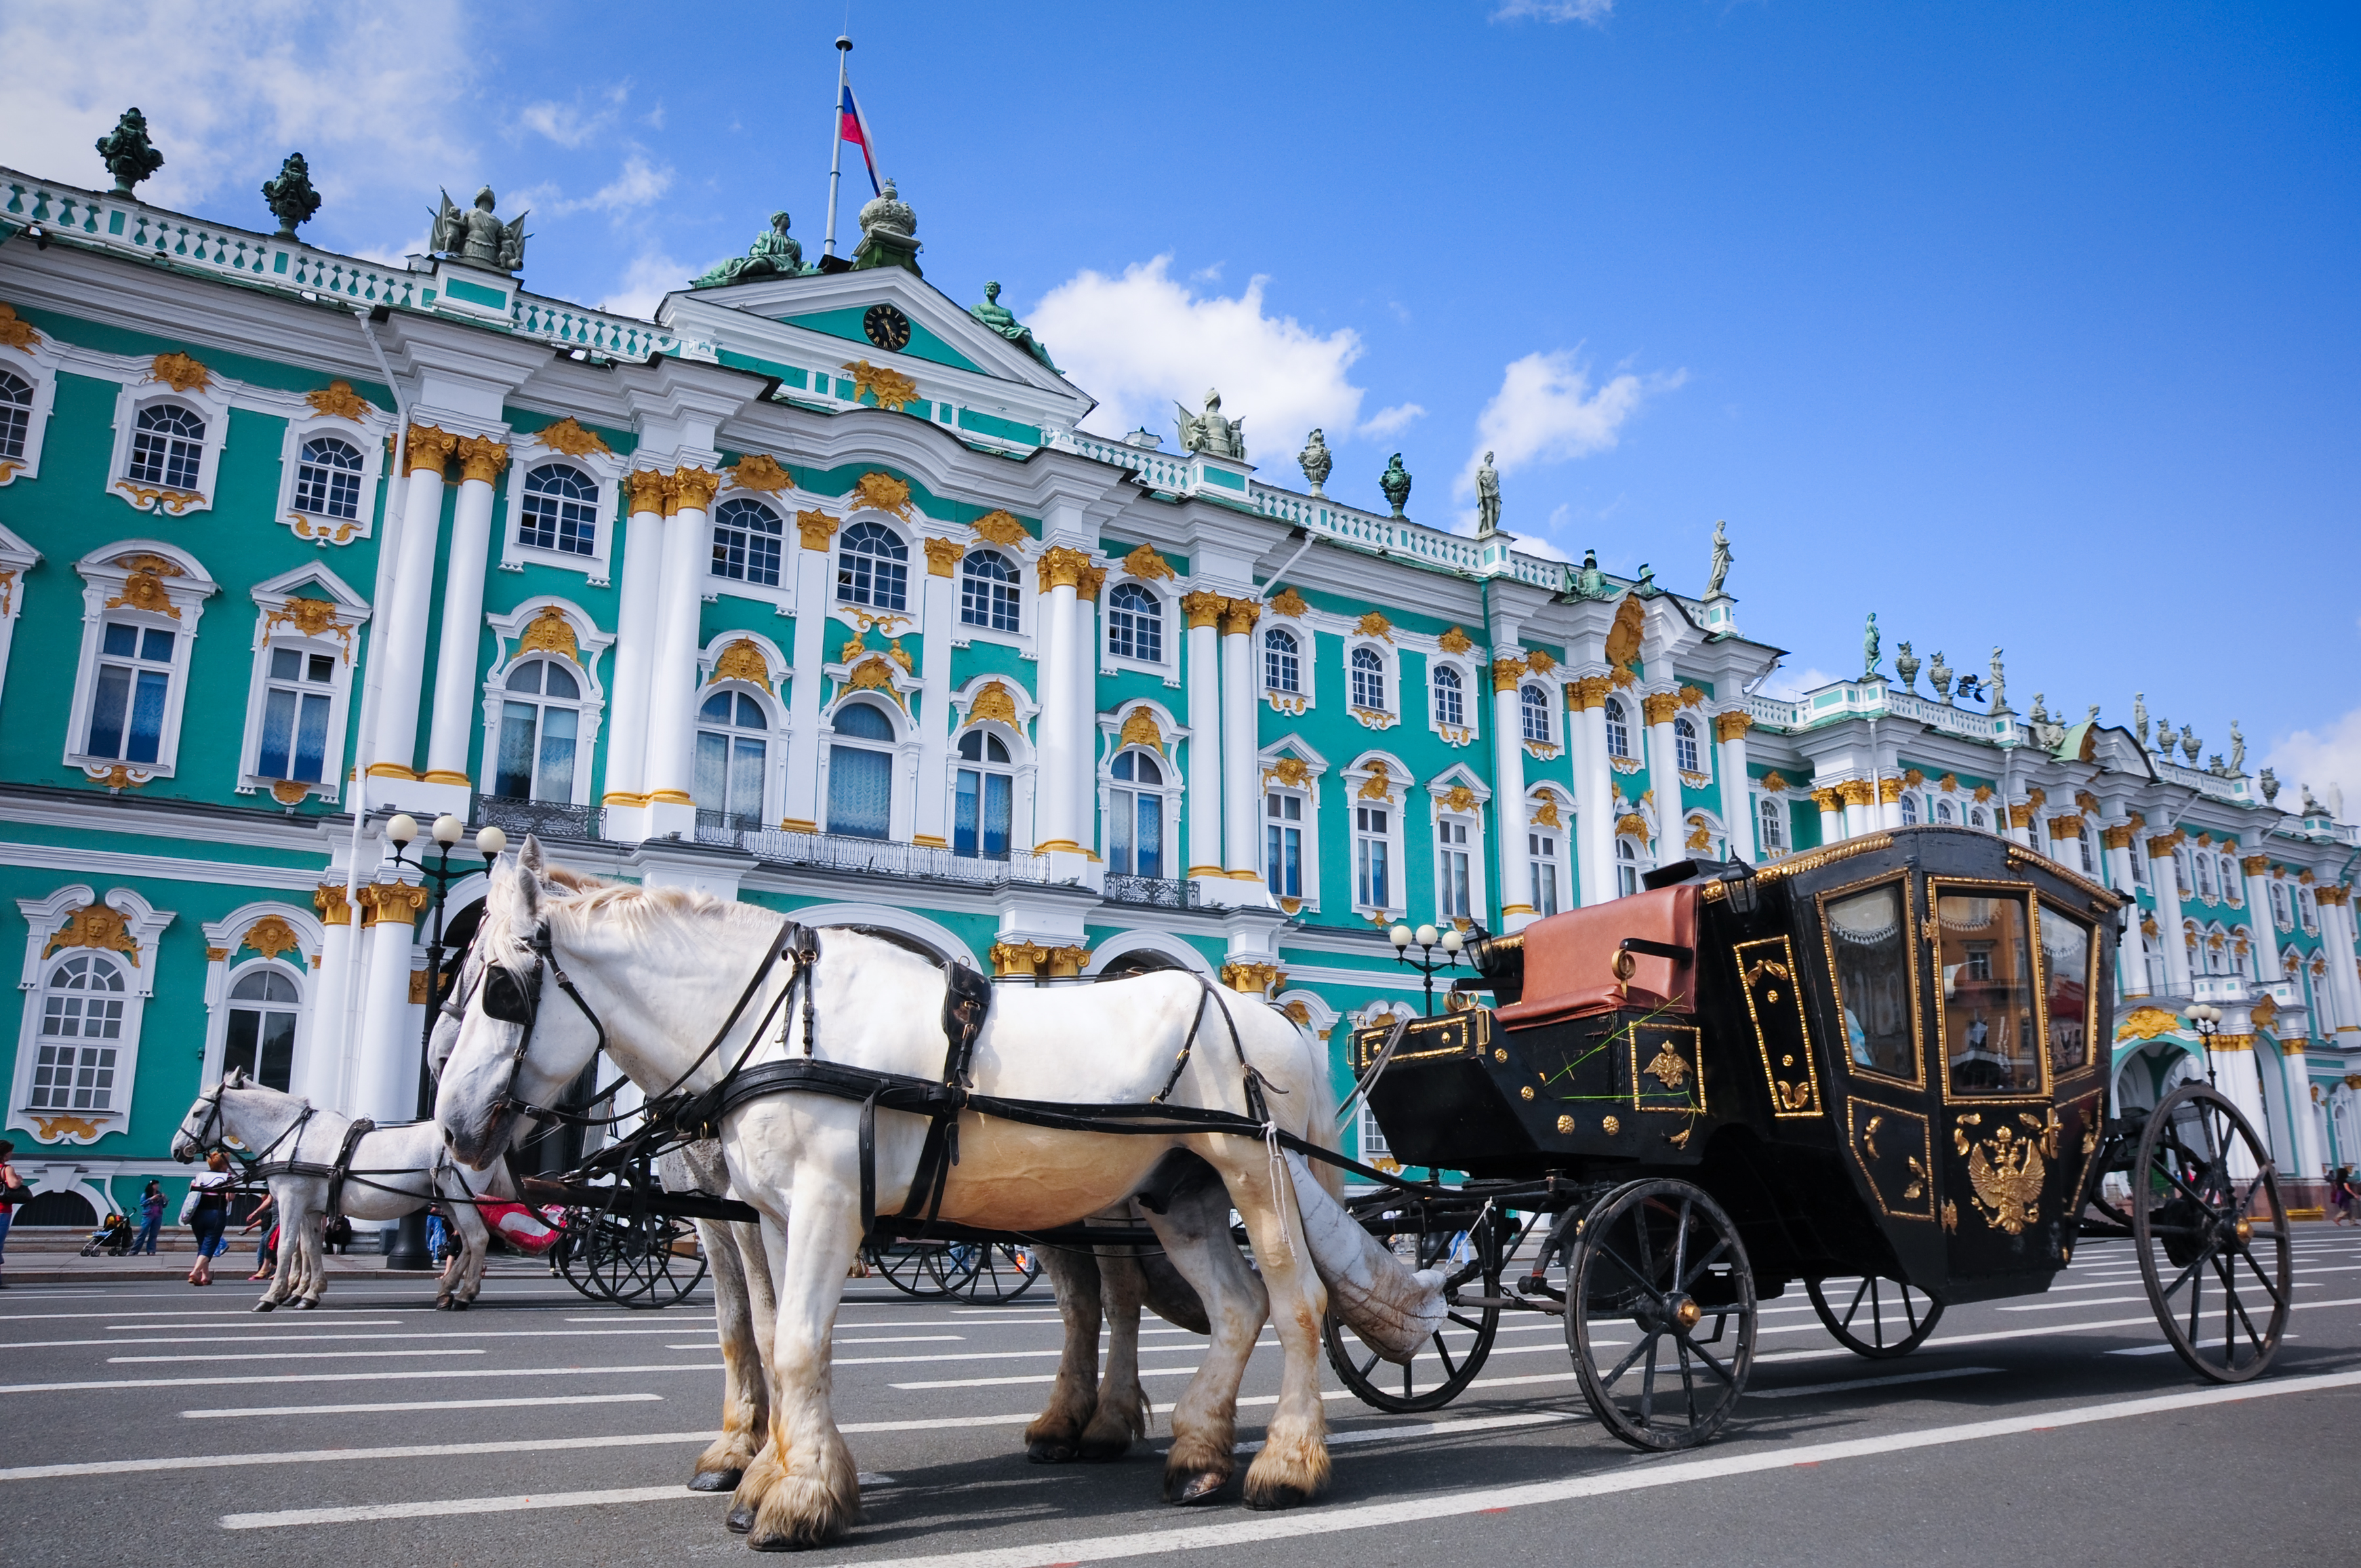 State Hermitage Museum in the Palace Square